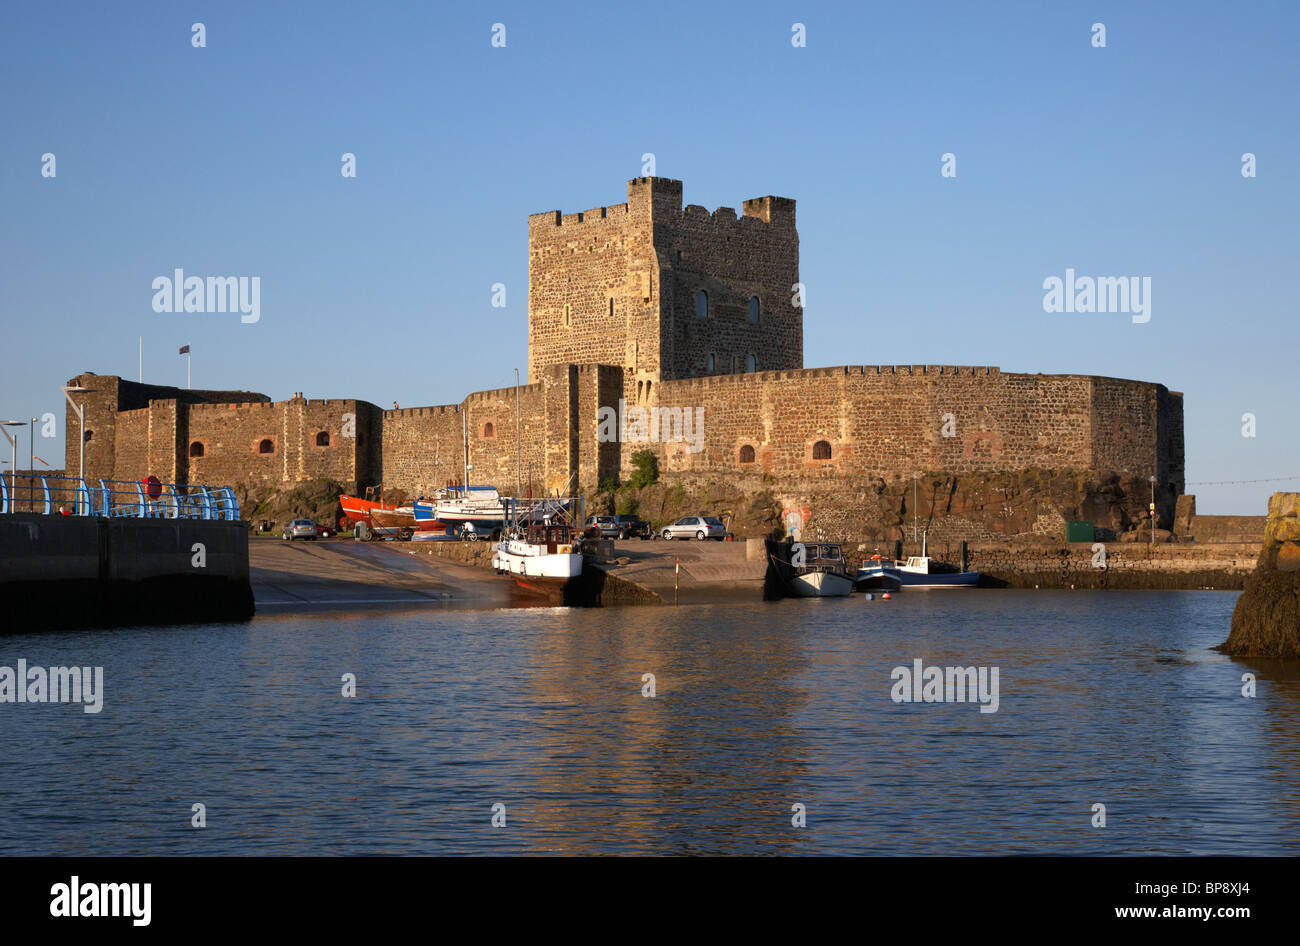 carrickfergus castle viewed from the harbour county antrim northern ireland uk - Stock Image